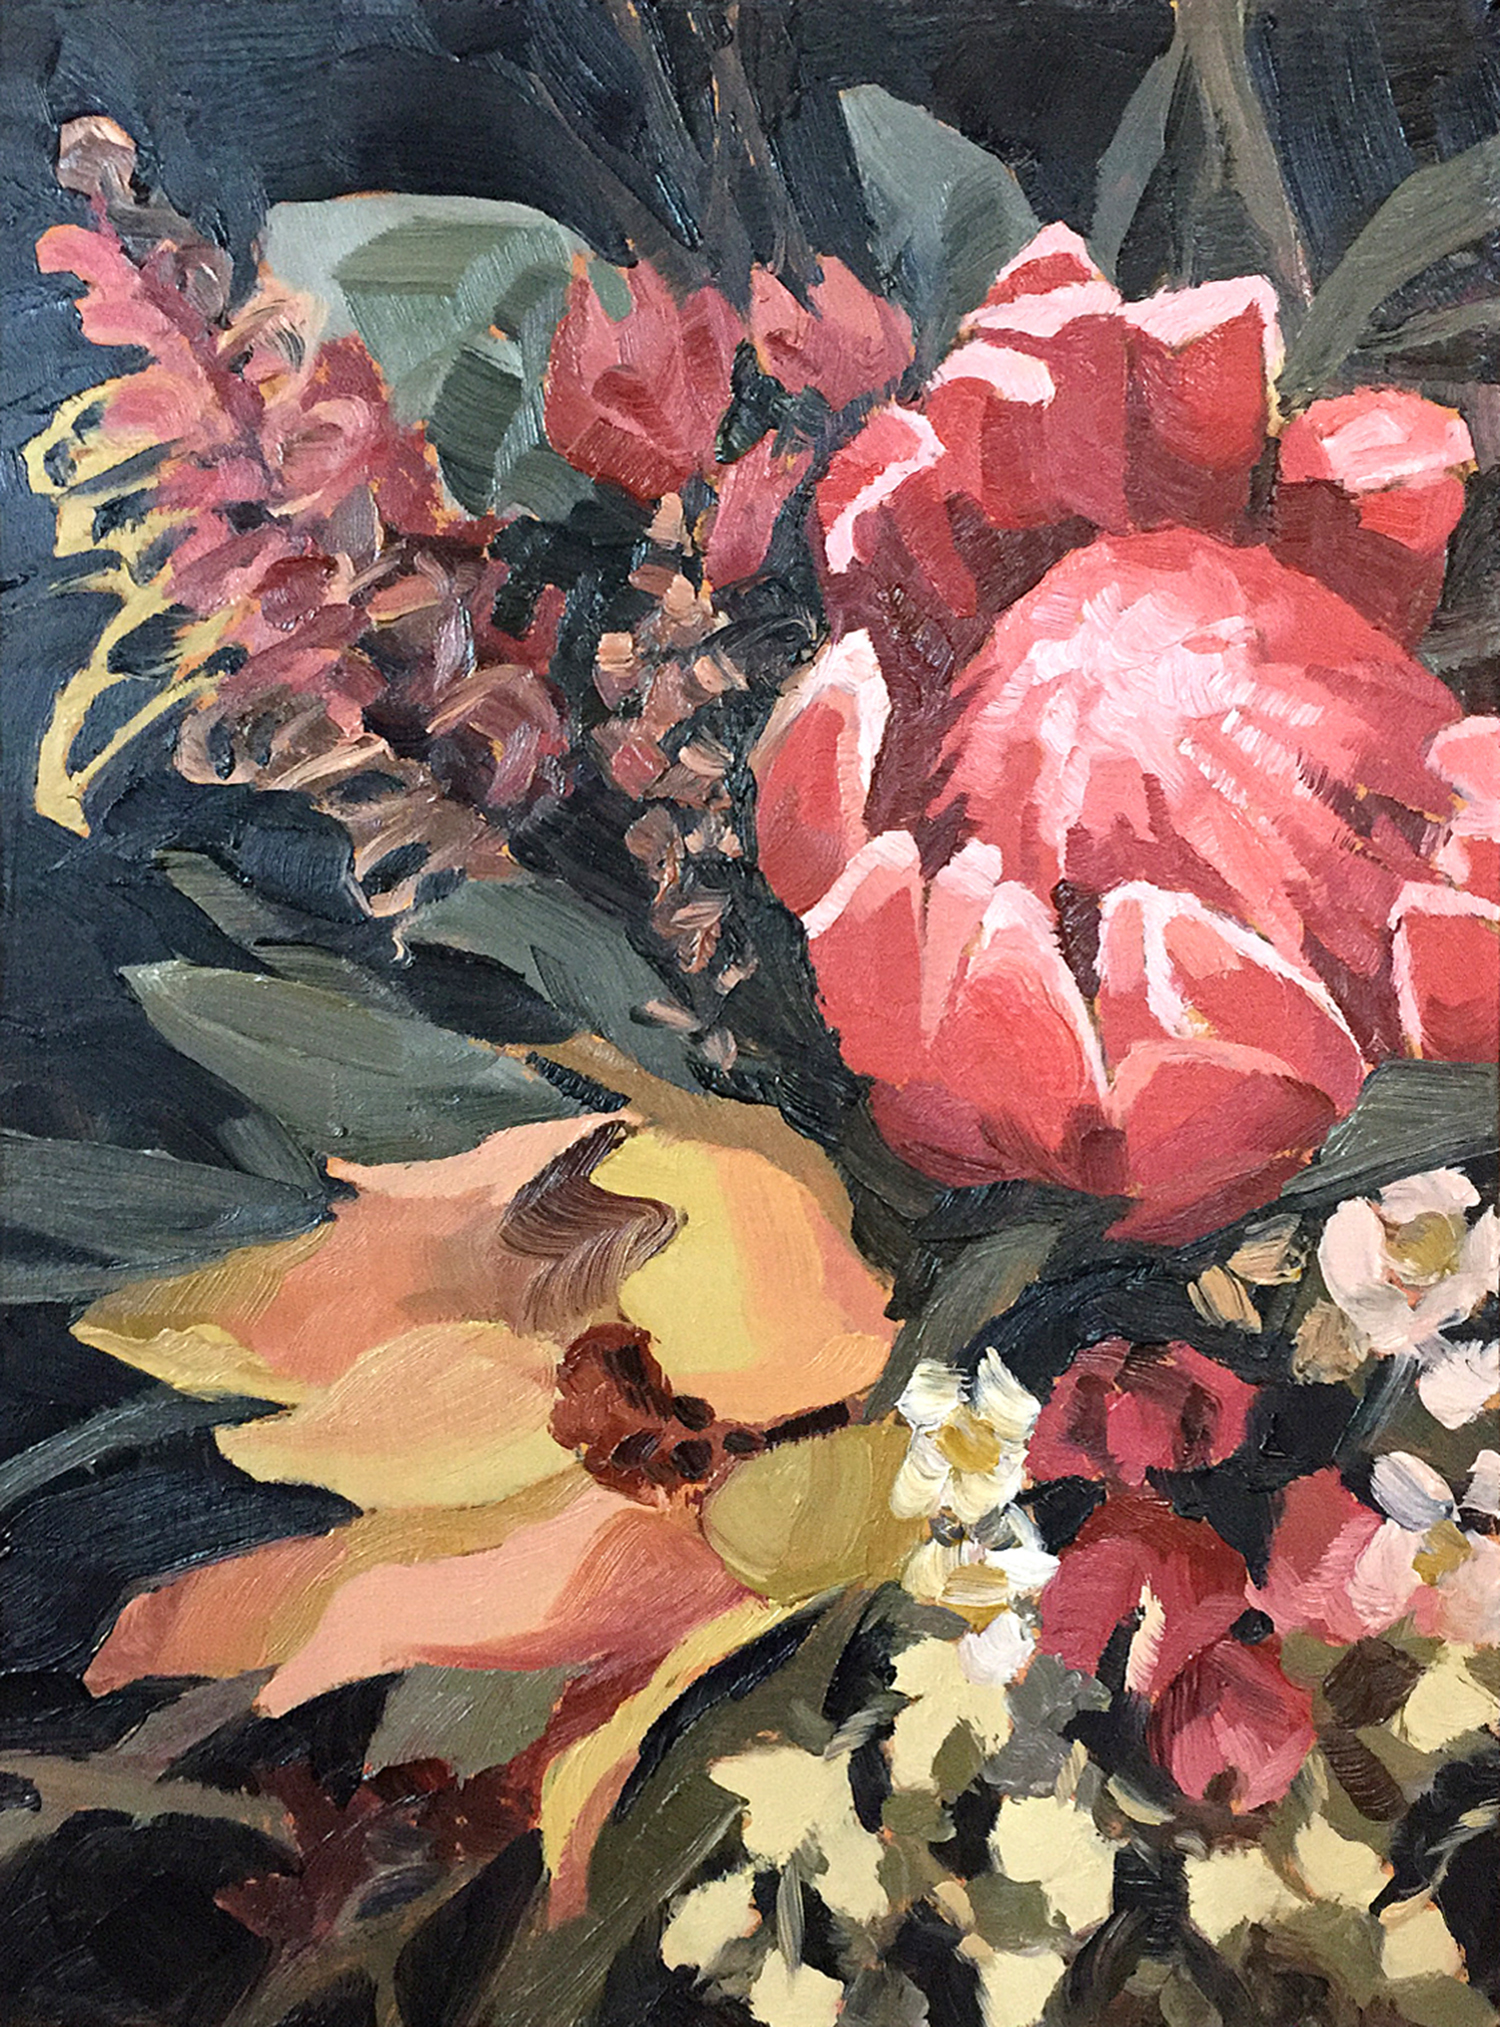 Protea and Leucadendron Oil paintings by Emma Fuss